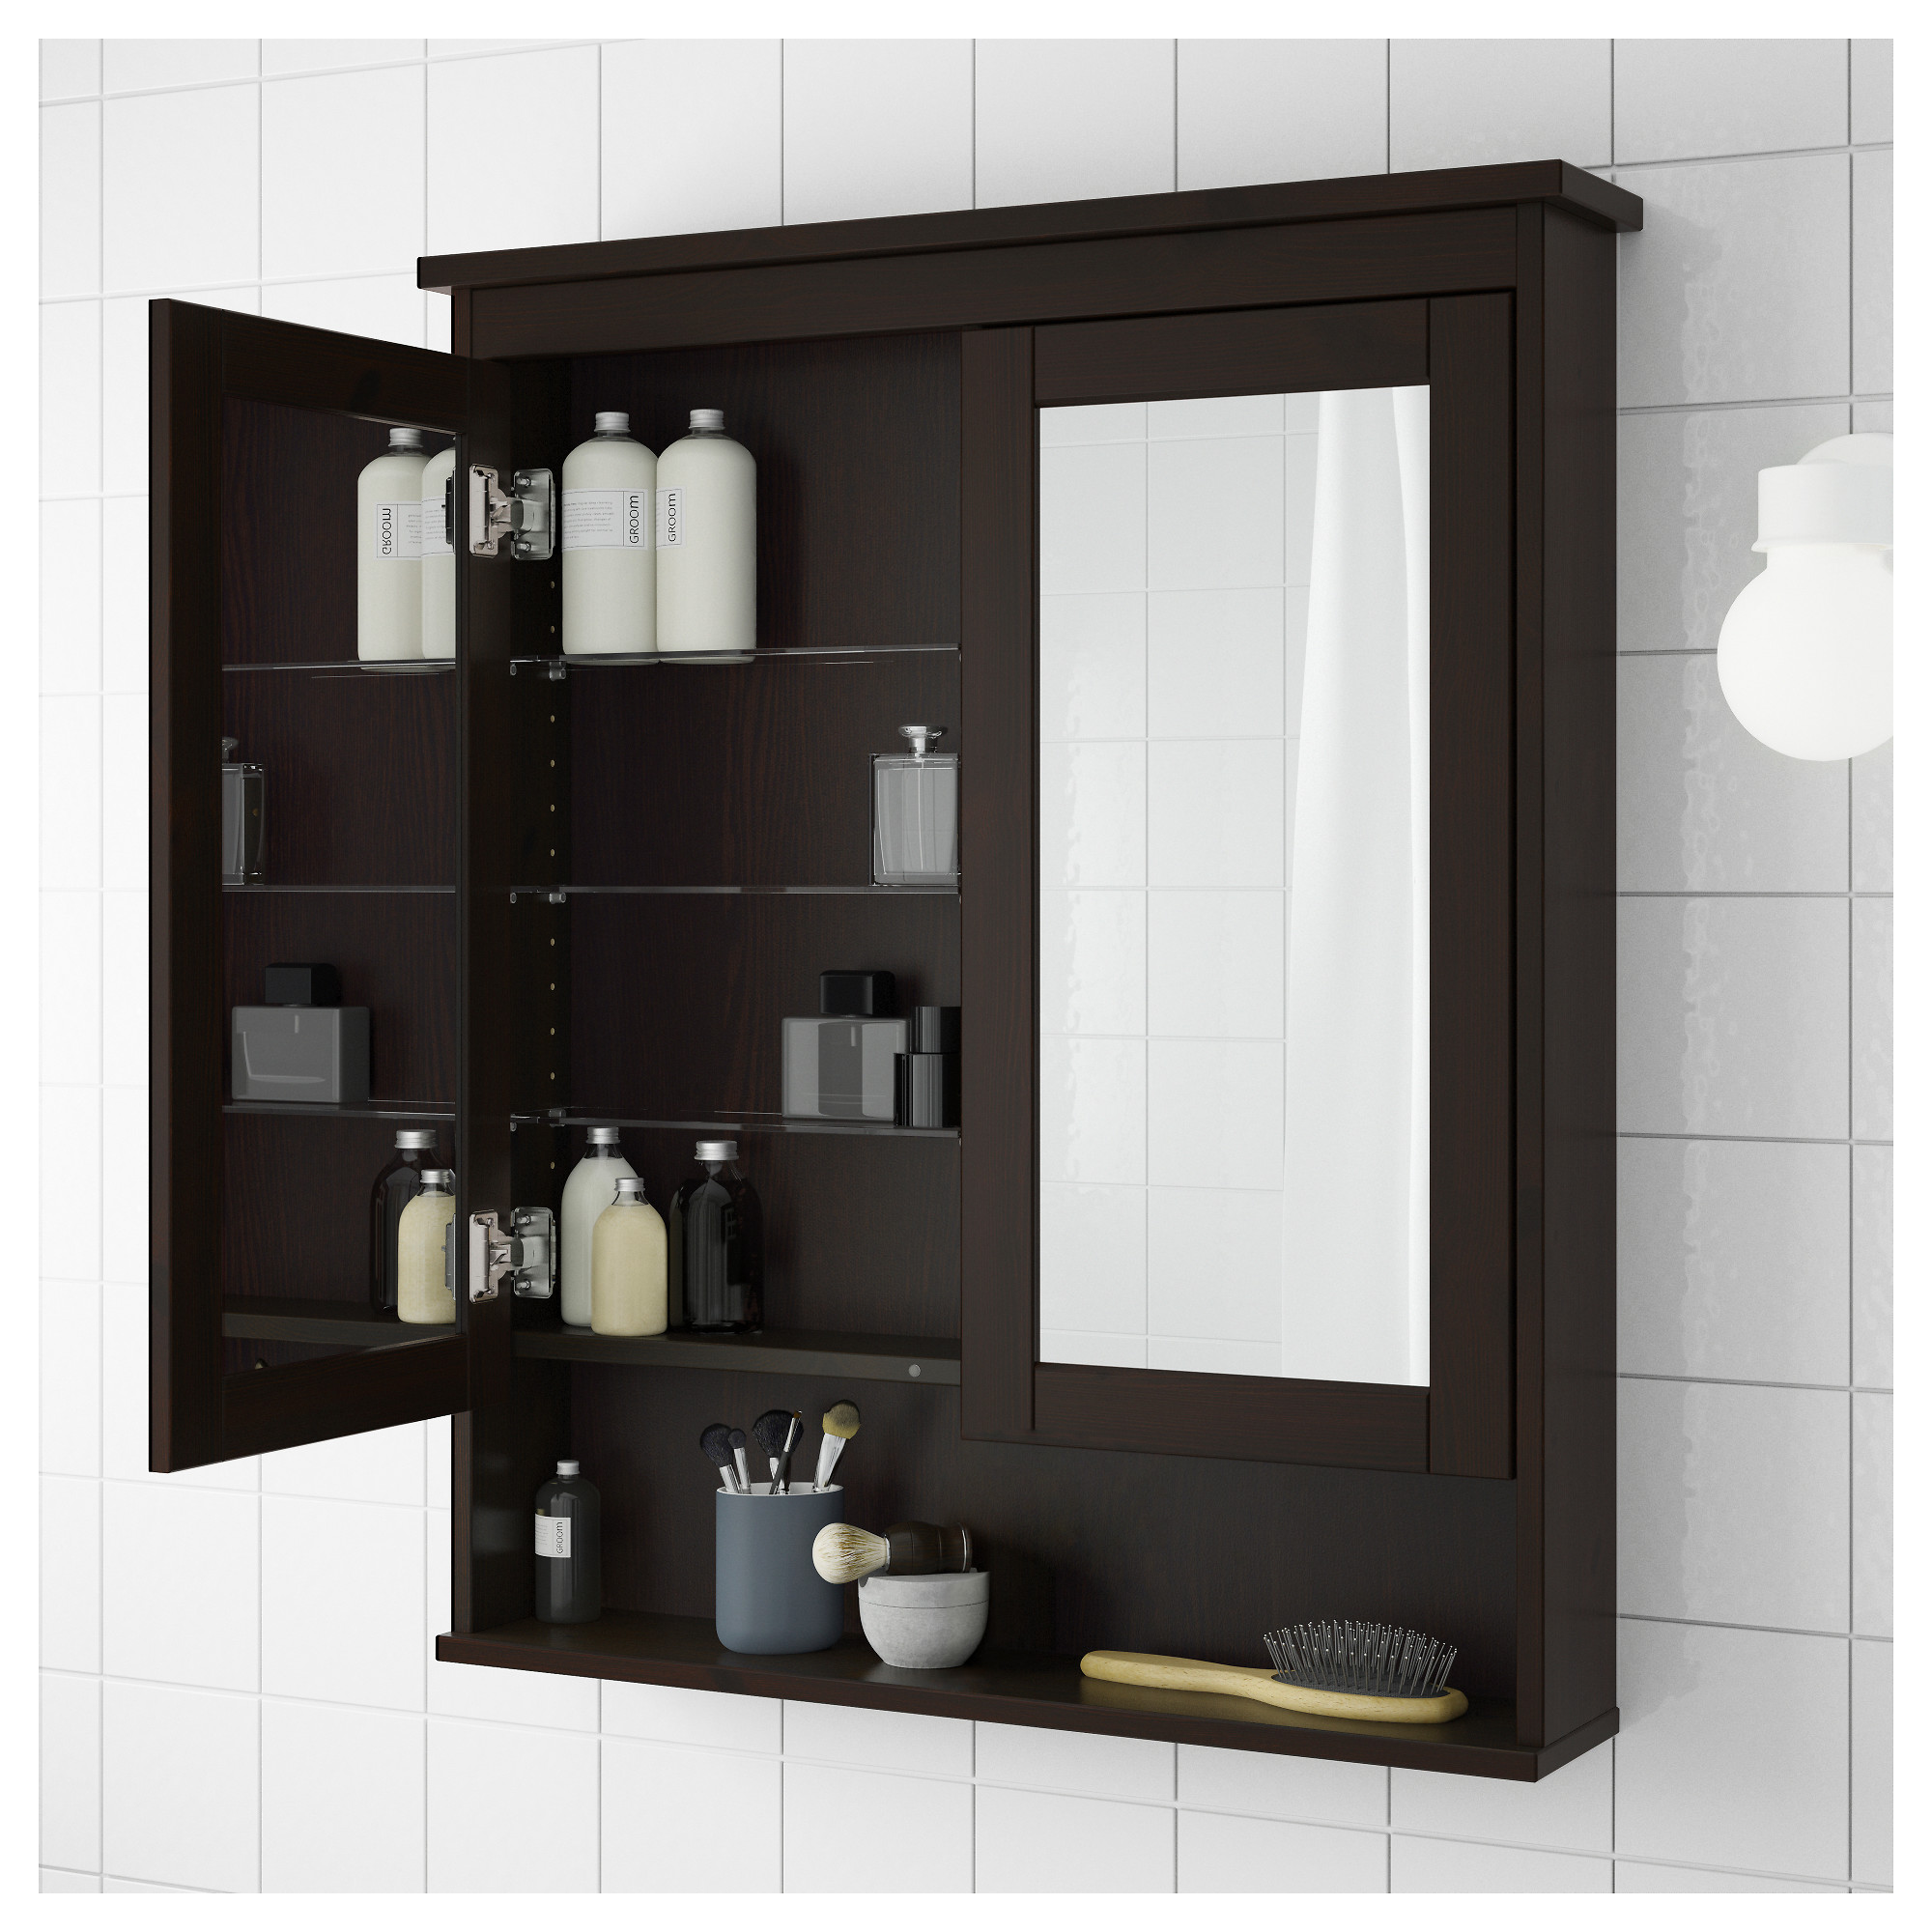 Hemnes Mirror Cabinet With 2 Doors Black Brown Stain 32 5 8x6 1 4x38 8 Ikea